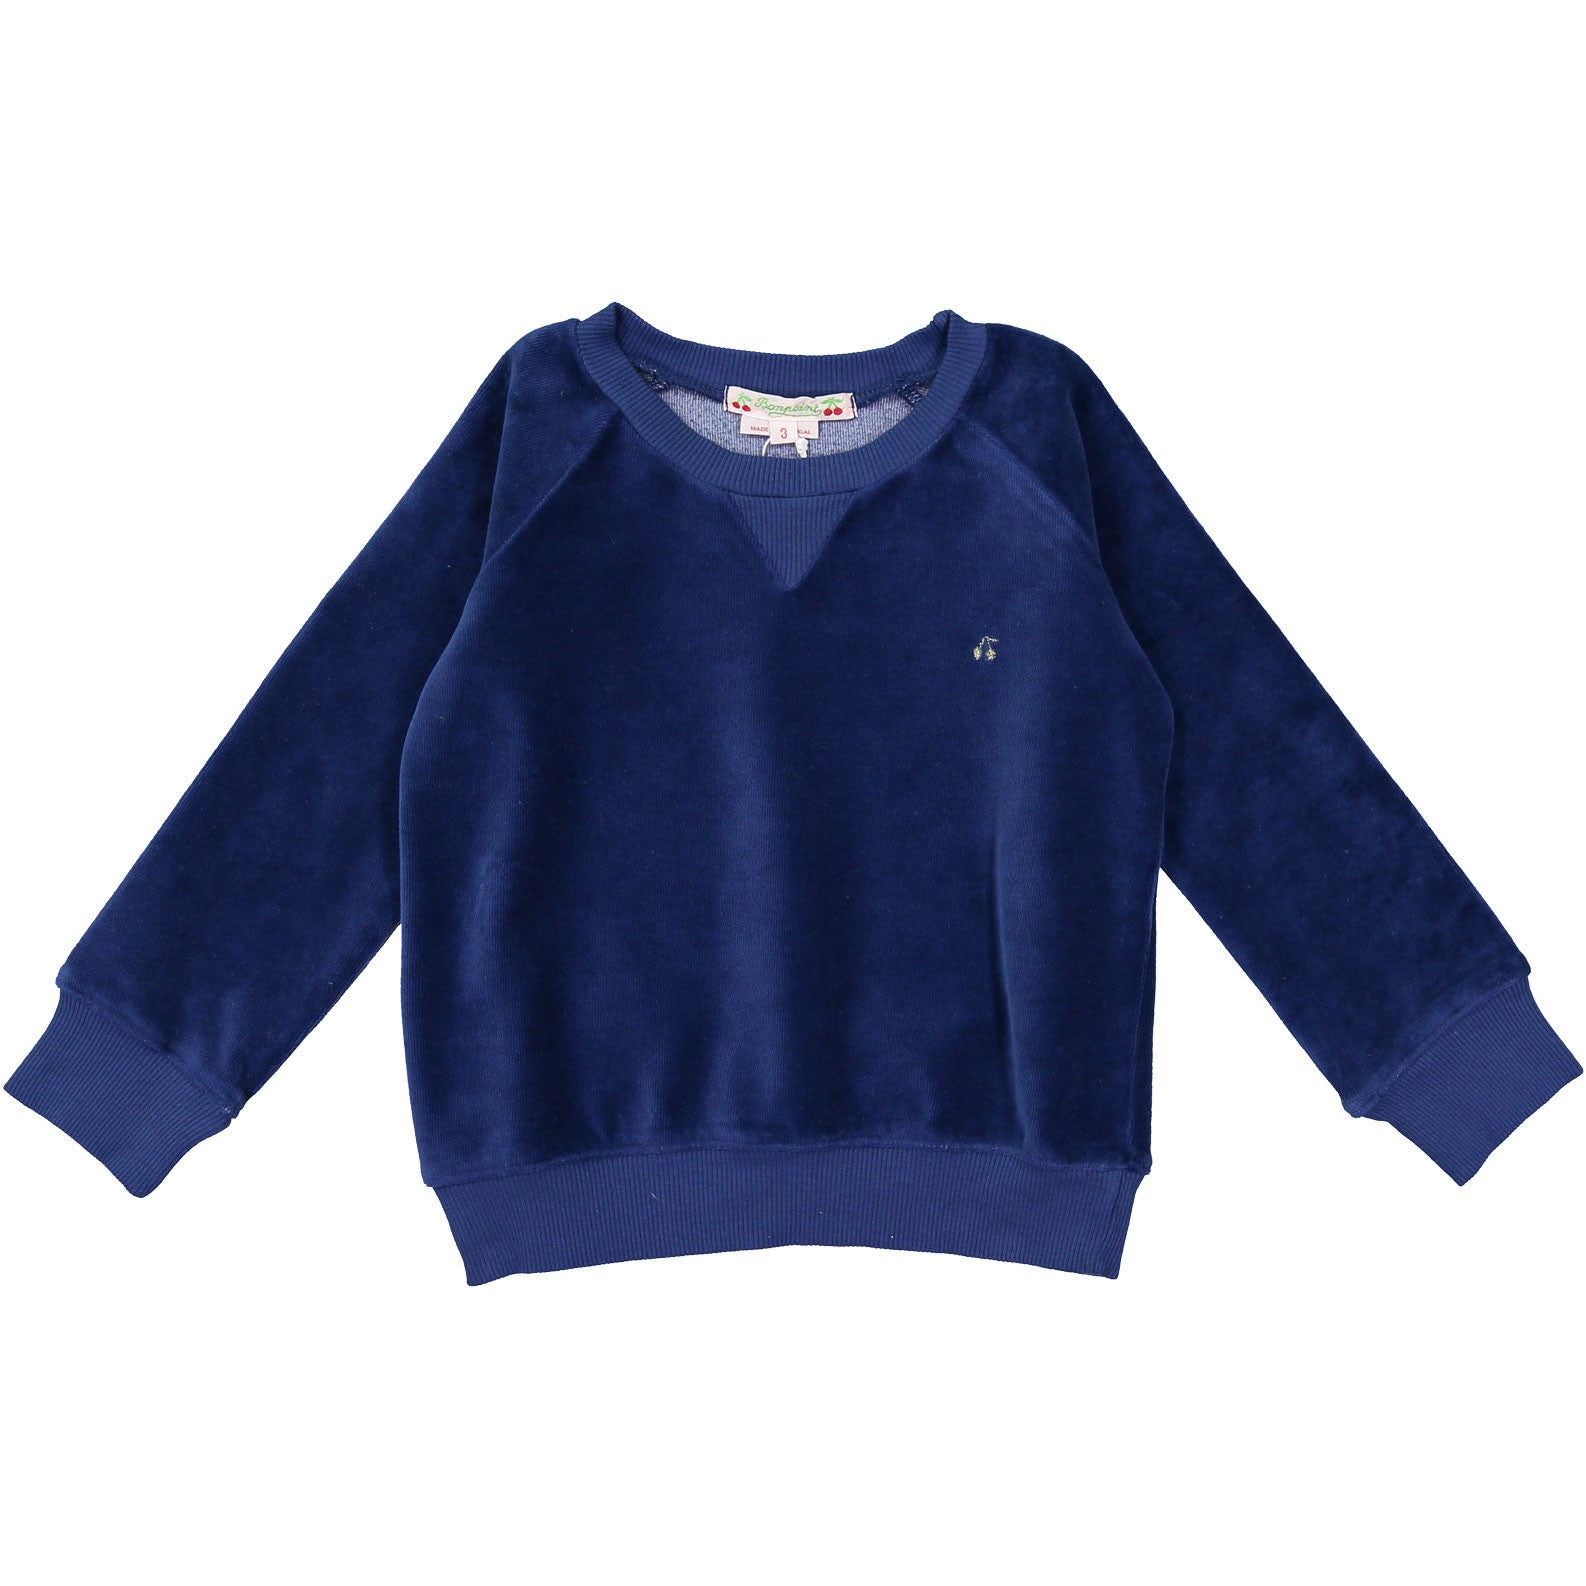 Bonpoint Navy Velvet Sweatshirt - Ladida